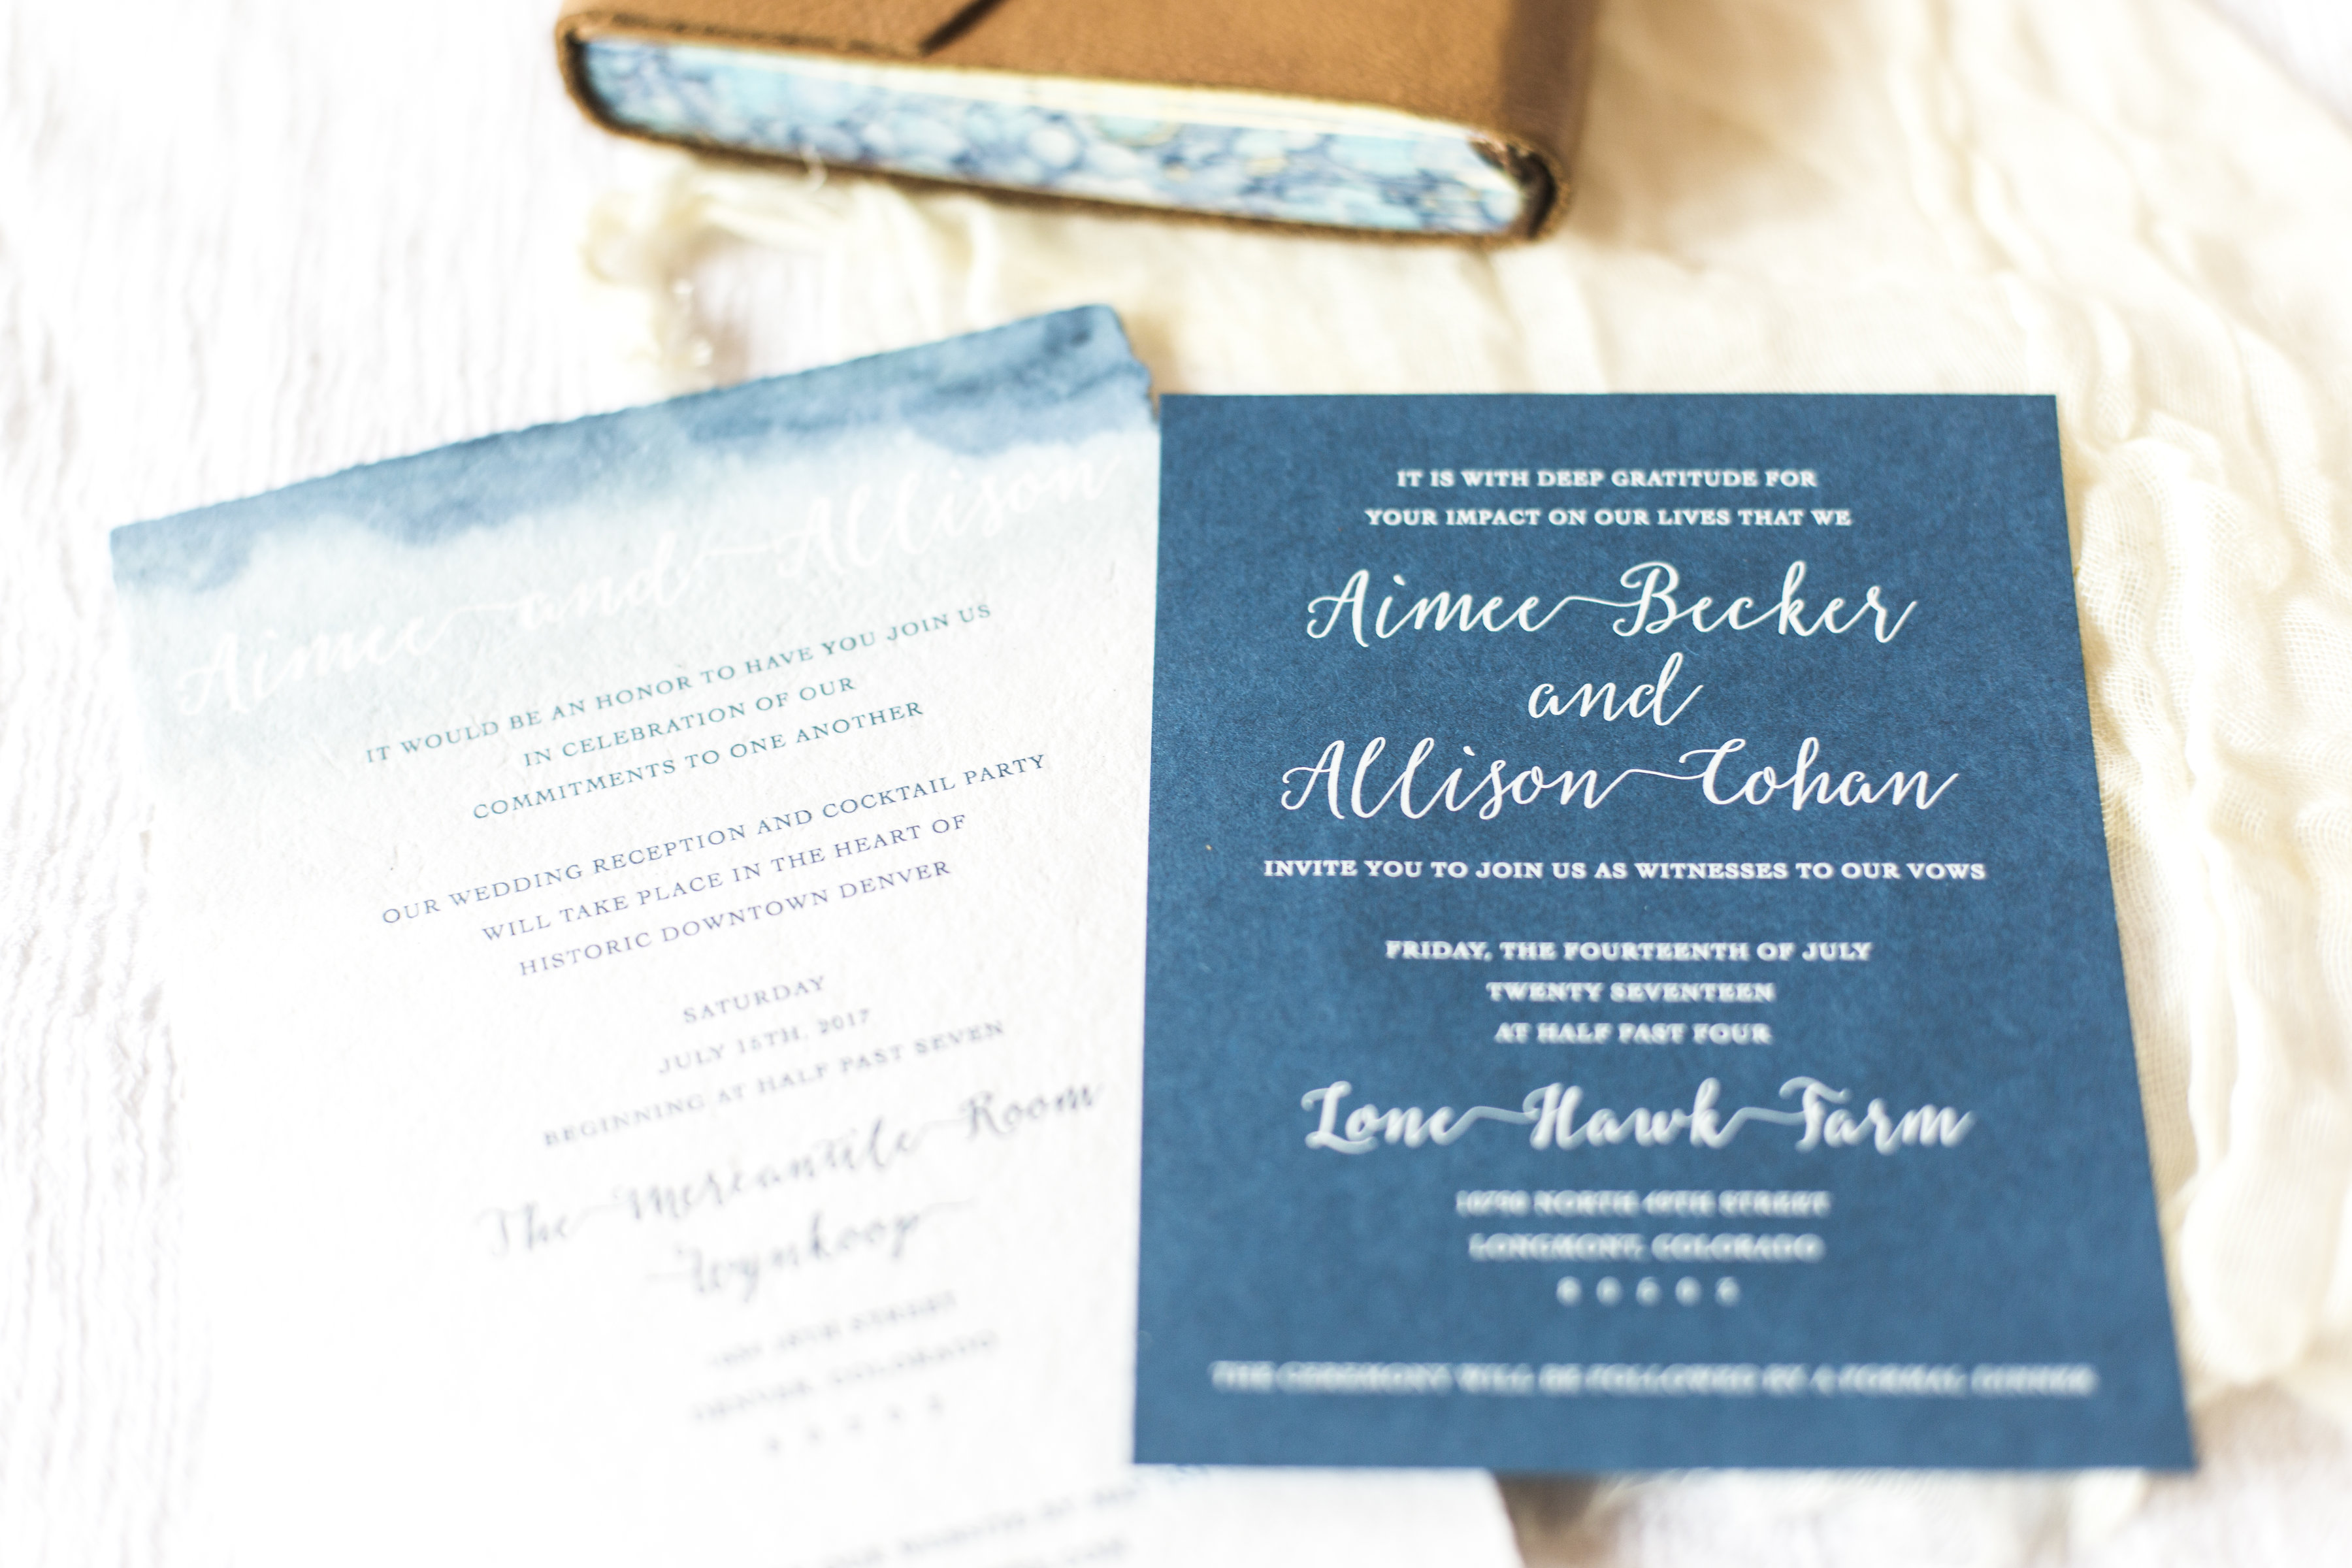 Ally & Aimee's Wedding - First Look Events